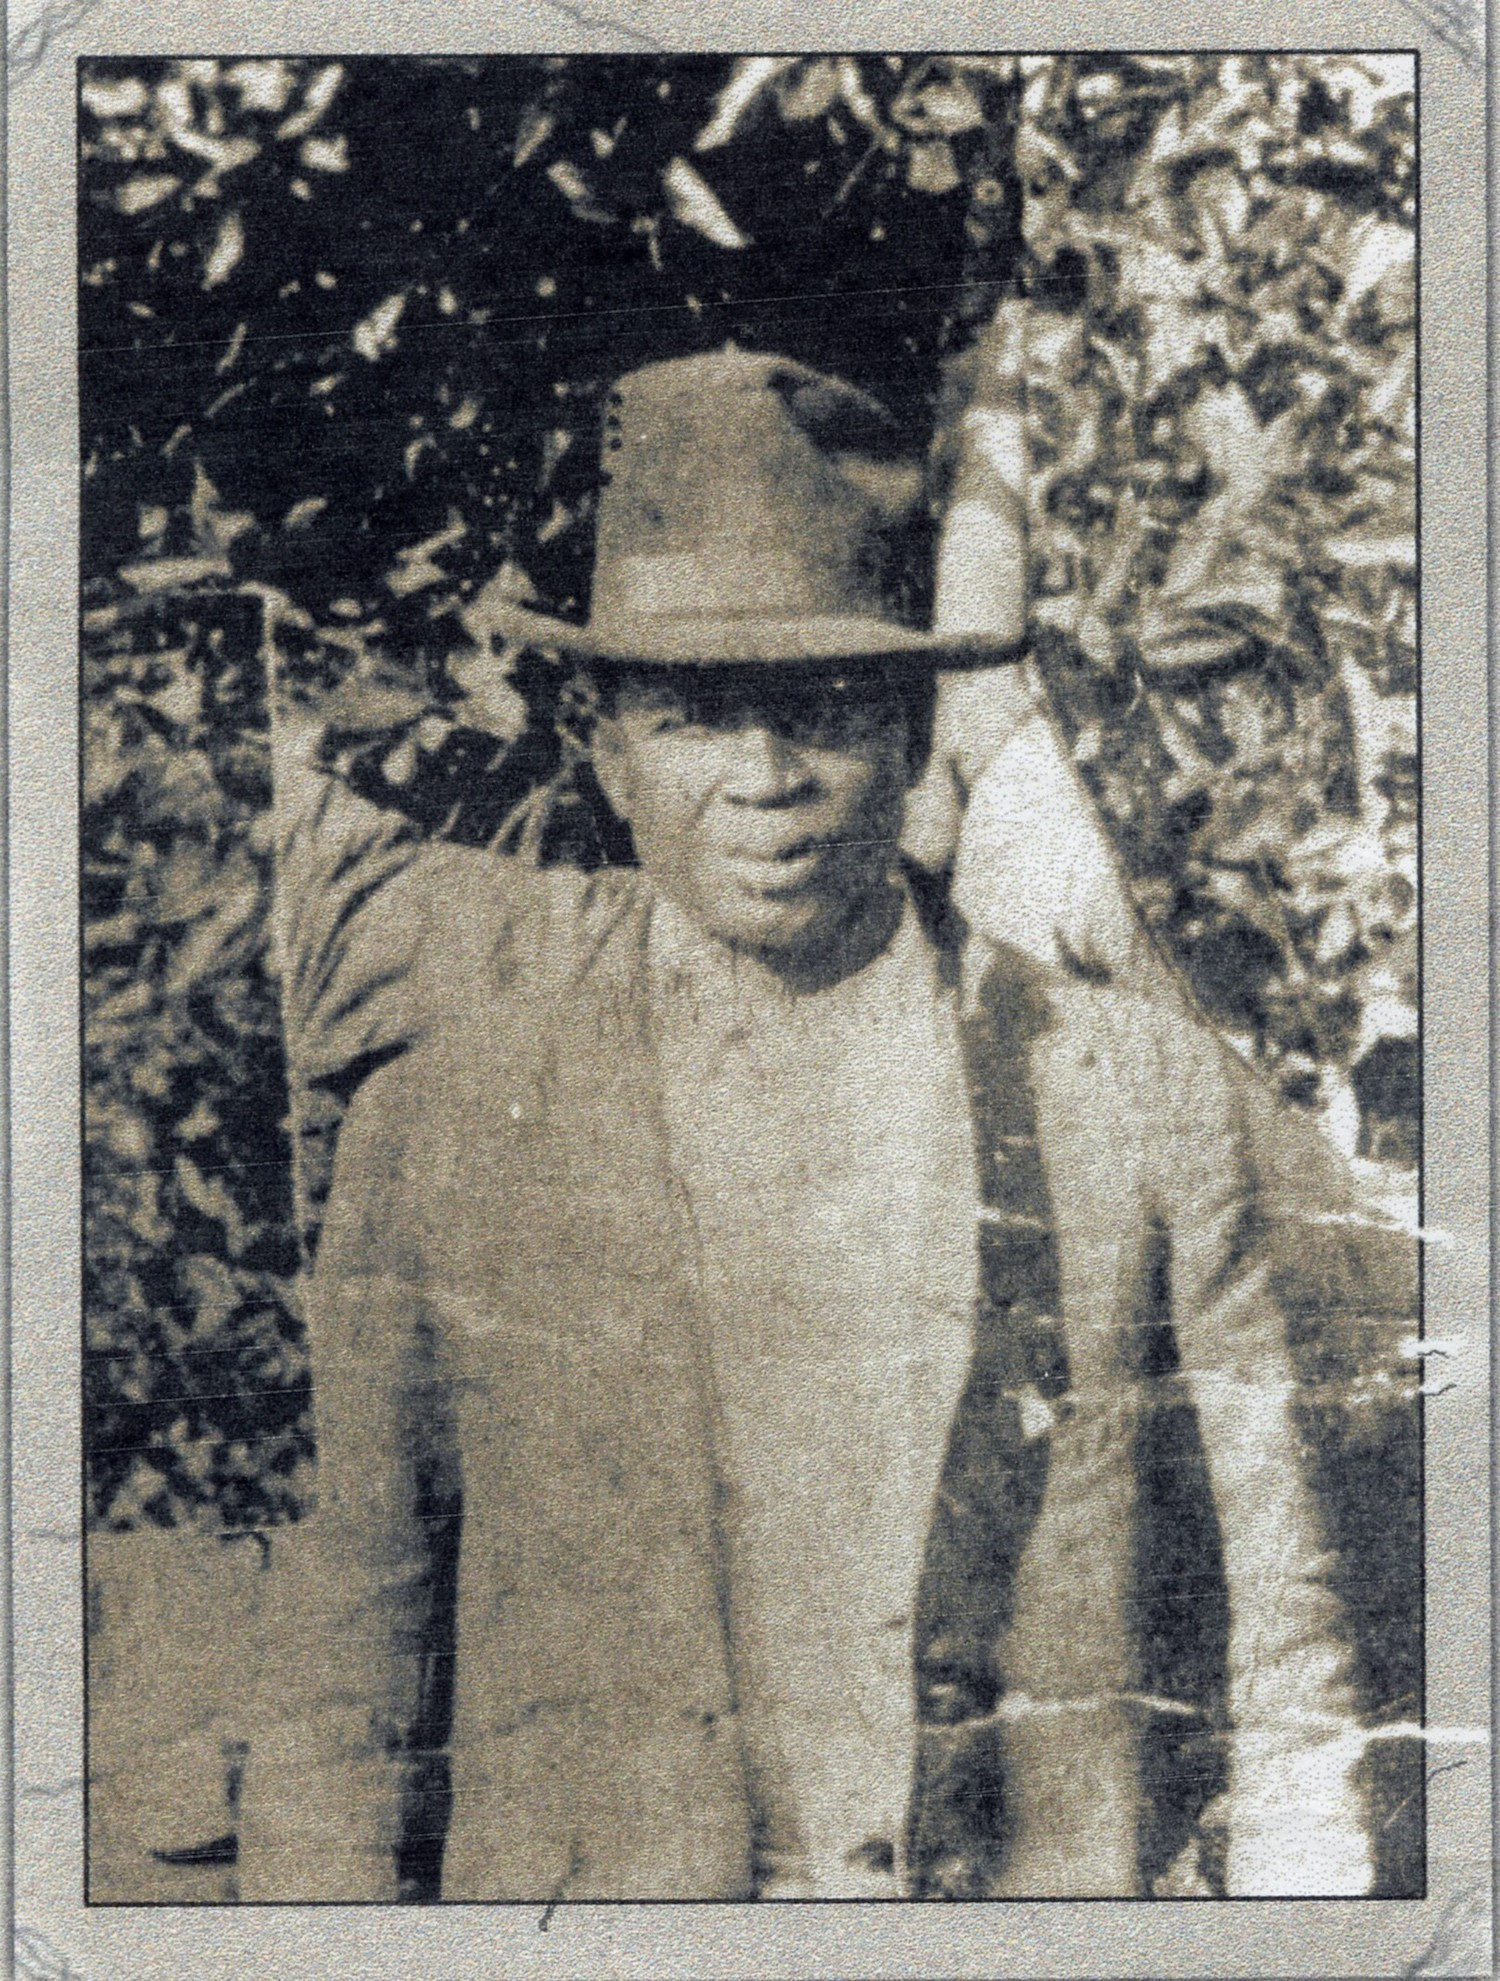 On Election Day in 1920, Julius 'July' Perry was beaten and lynched by white men incensed that he attempted to vote. - PHOTOS AND DOCUMENTS COURTESY ORANGE COUNTY REGIONAL HISTORY CENTER